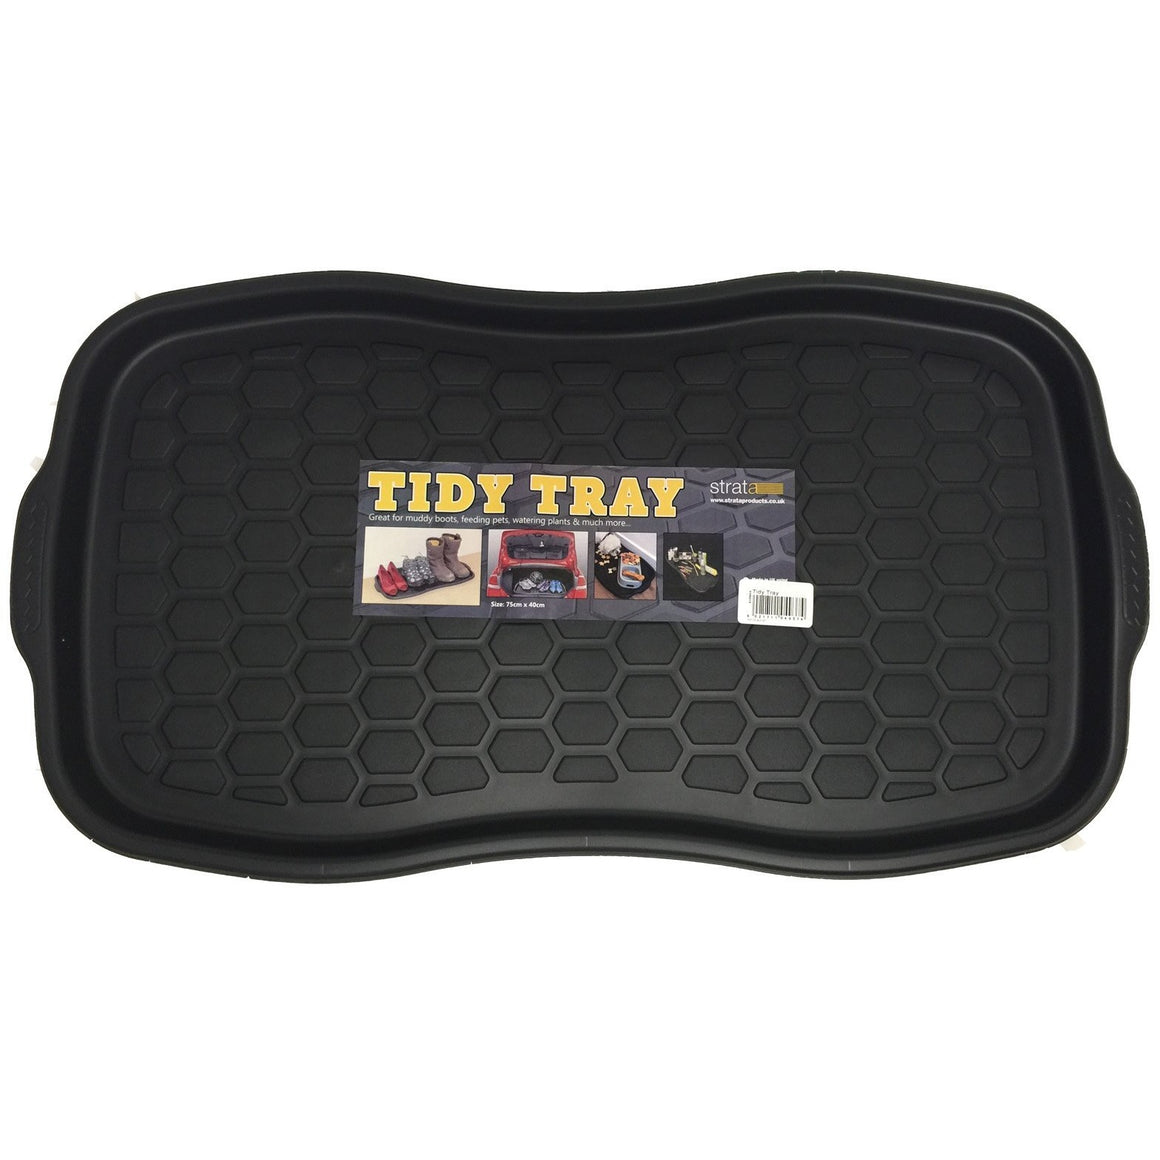 Boot tray color black shows full front view